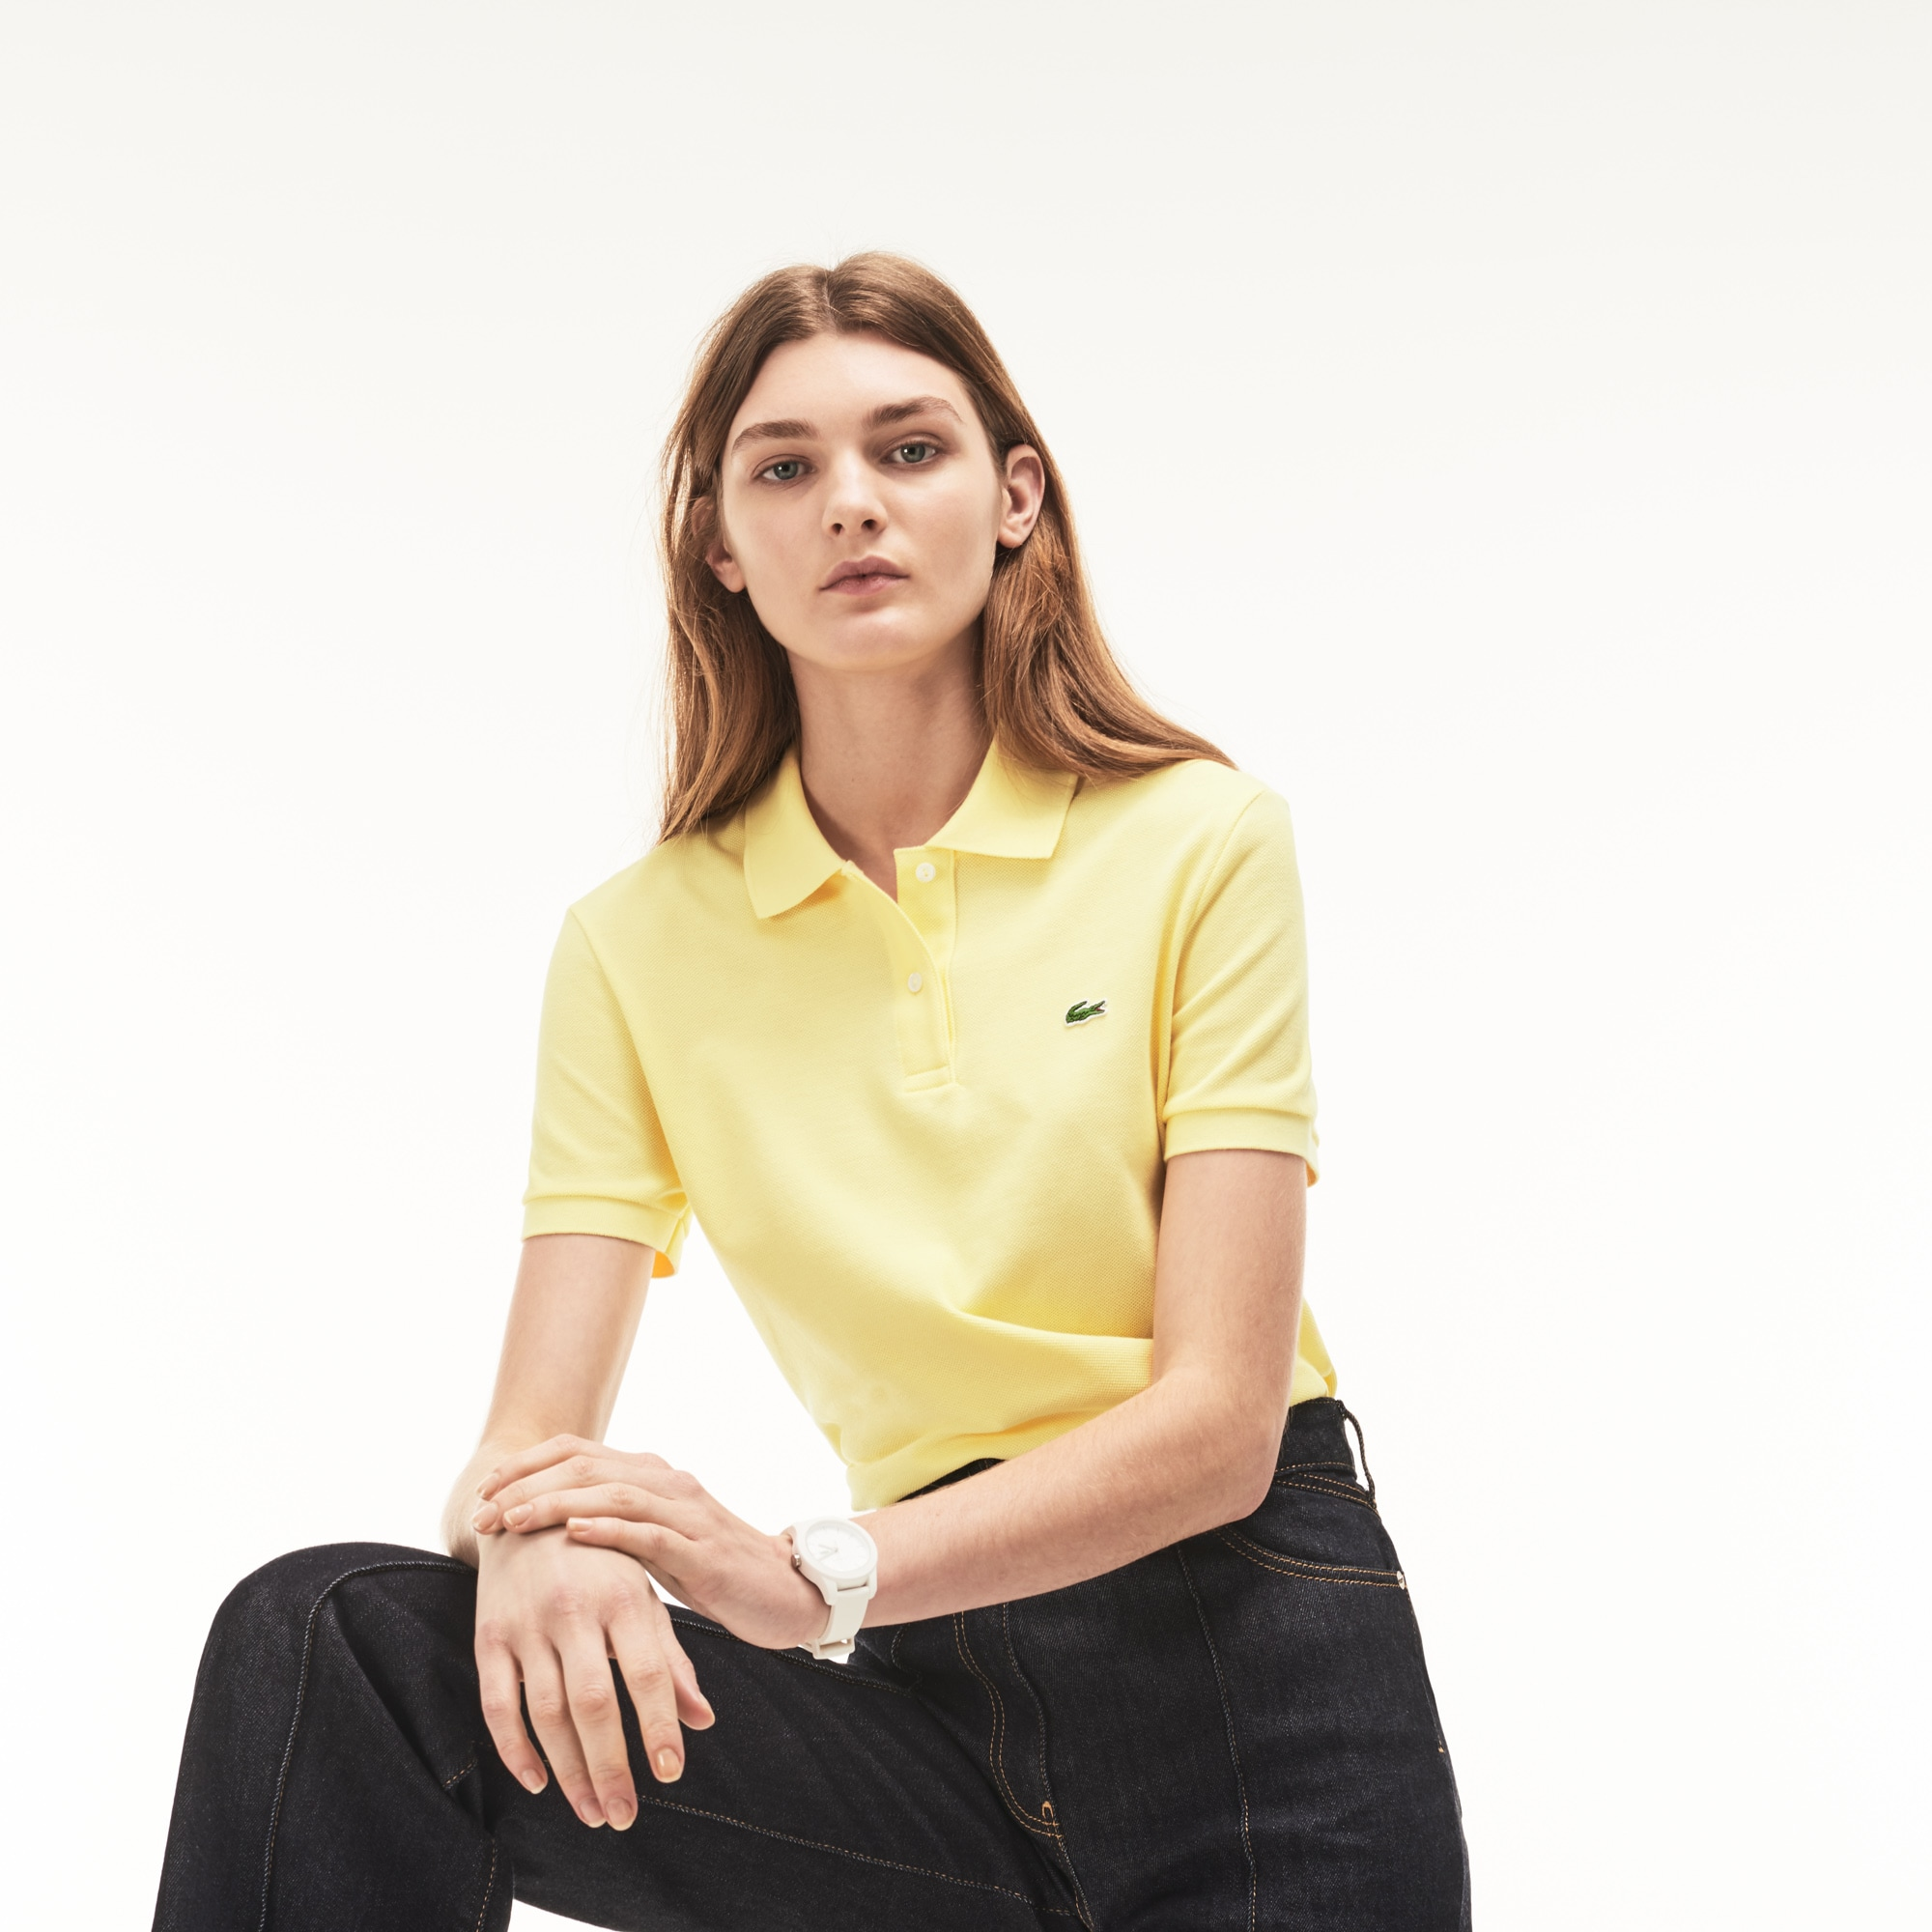 Women's Lacoste Classic Fit Soft Cotton Petit Piqué Polo Shirt